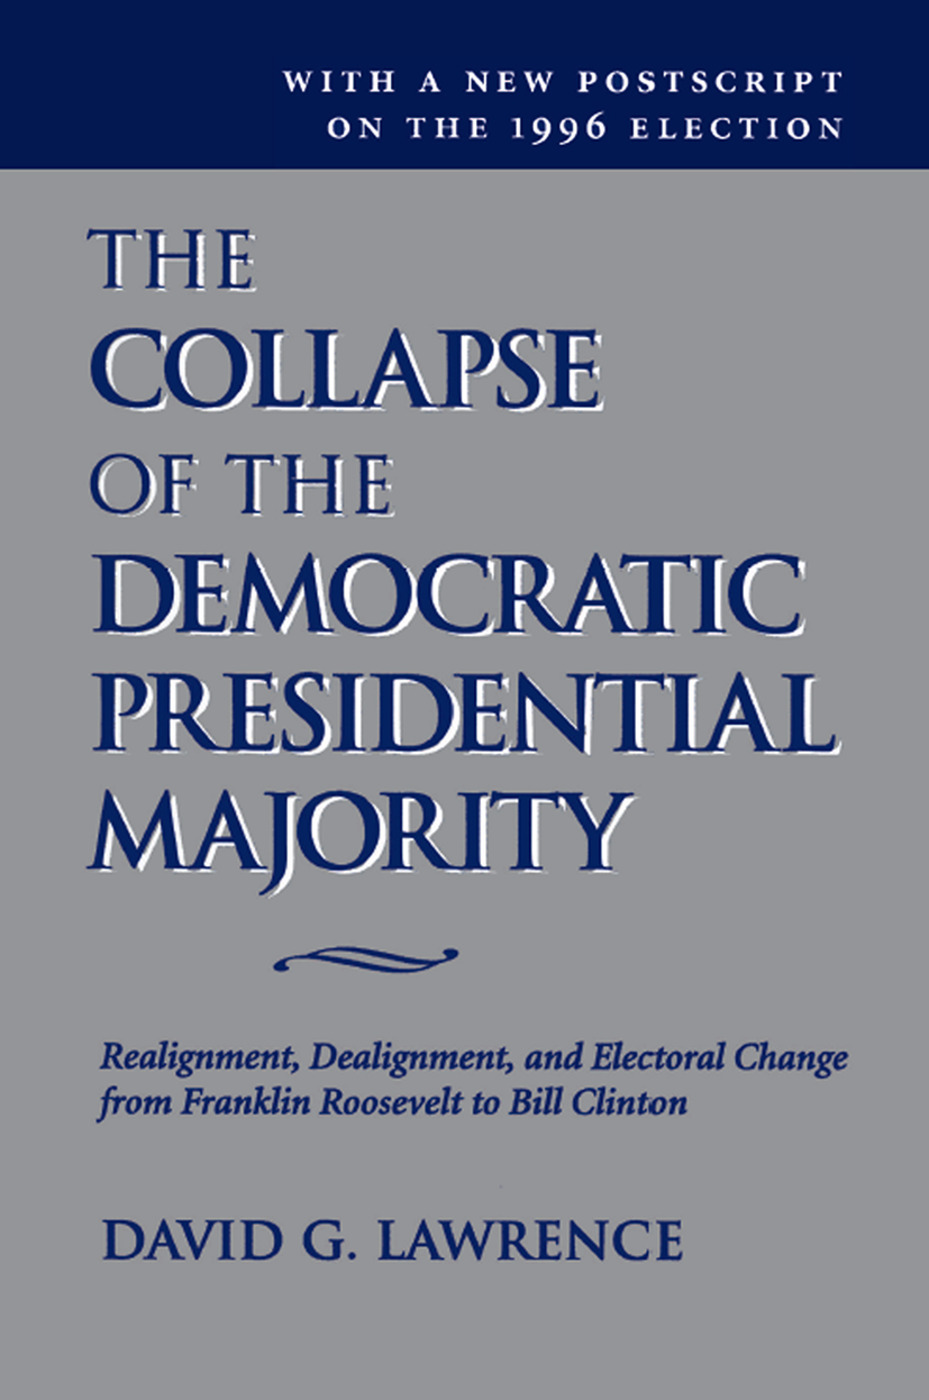 The Collapse Of The Democratic Presidential Majority: Realignment, Dealignment, And Electoral Change From Franklin Roosevelt To Bill Clinton book cover